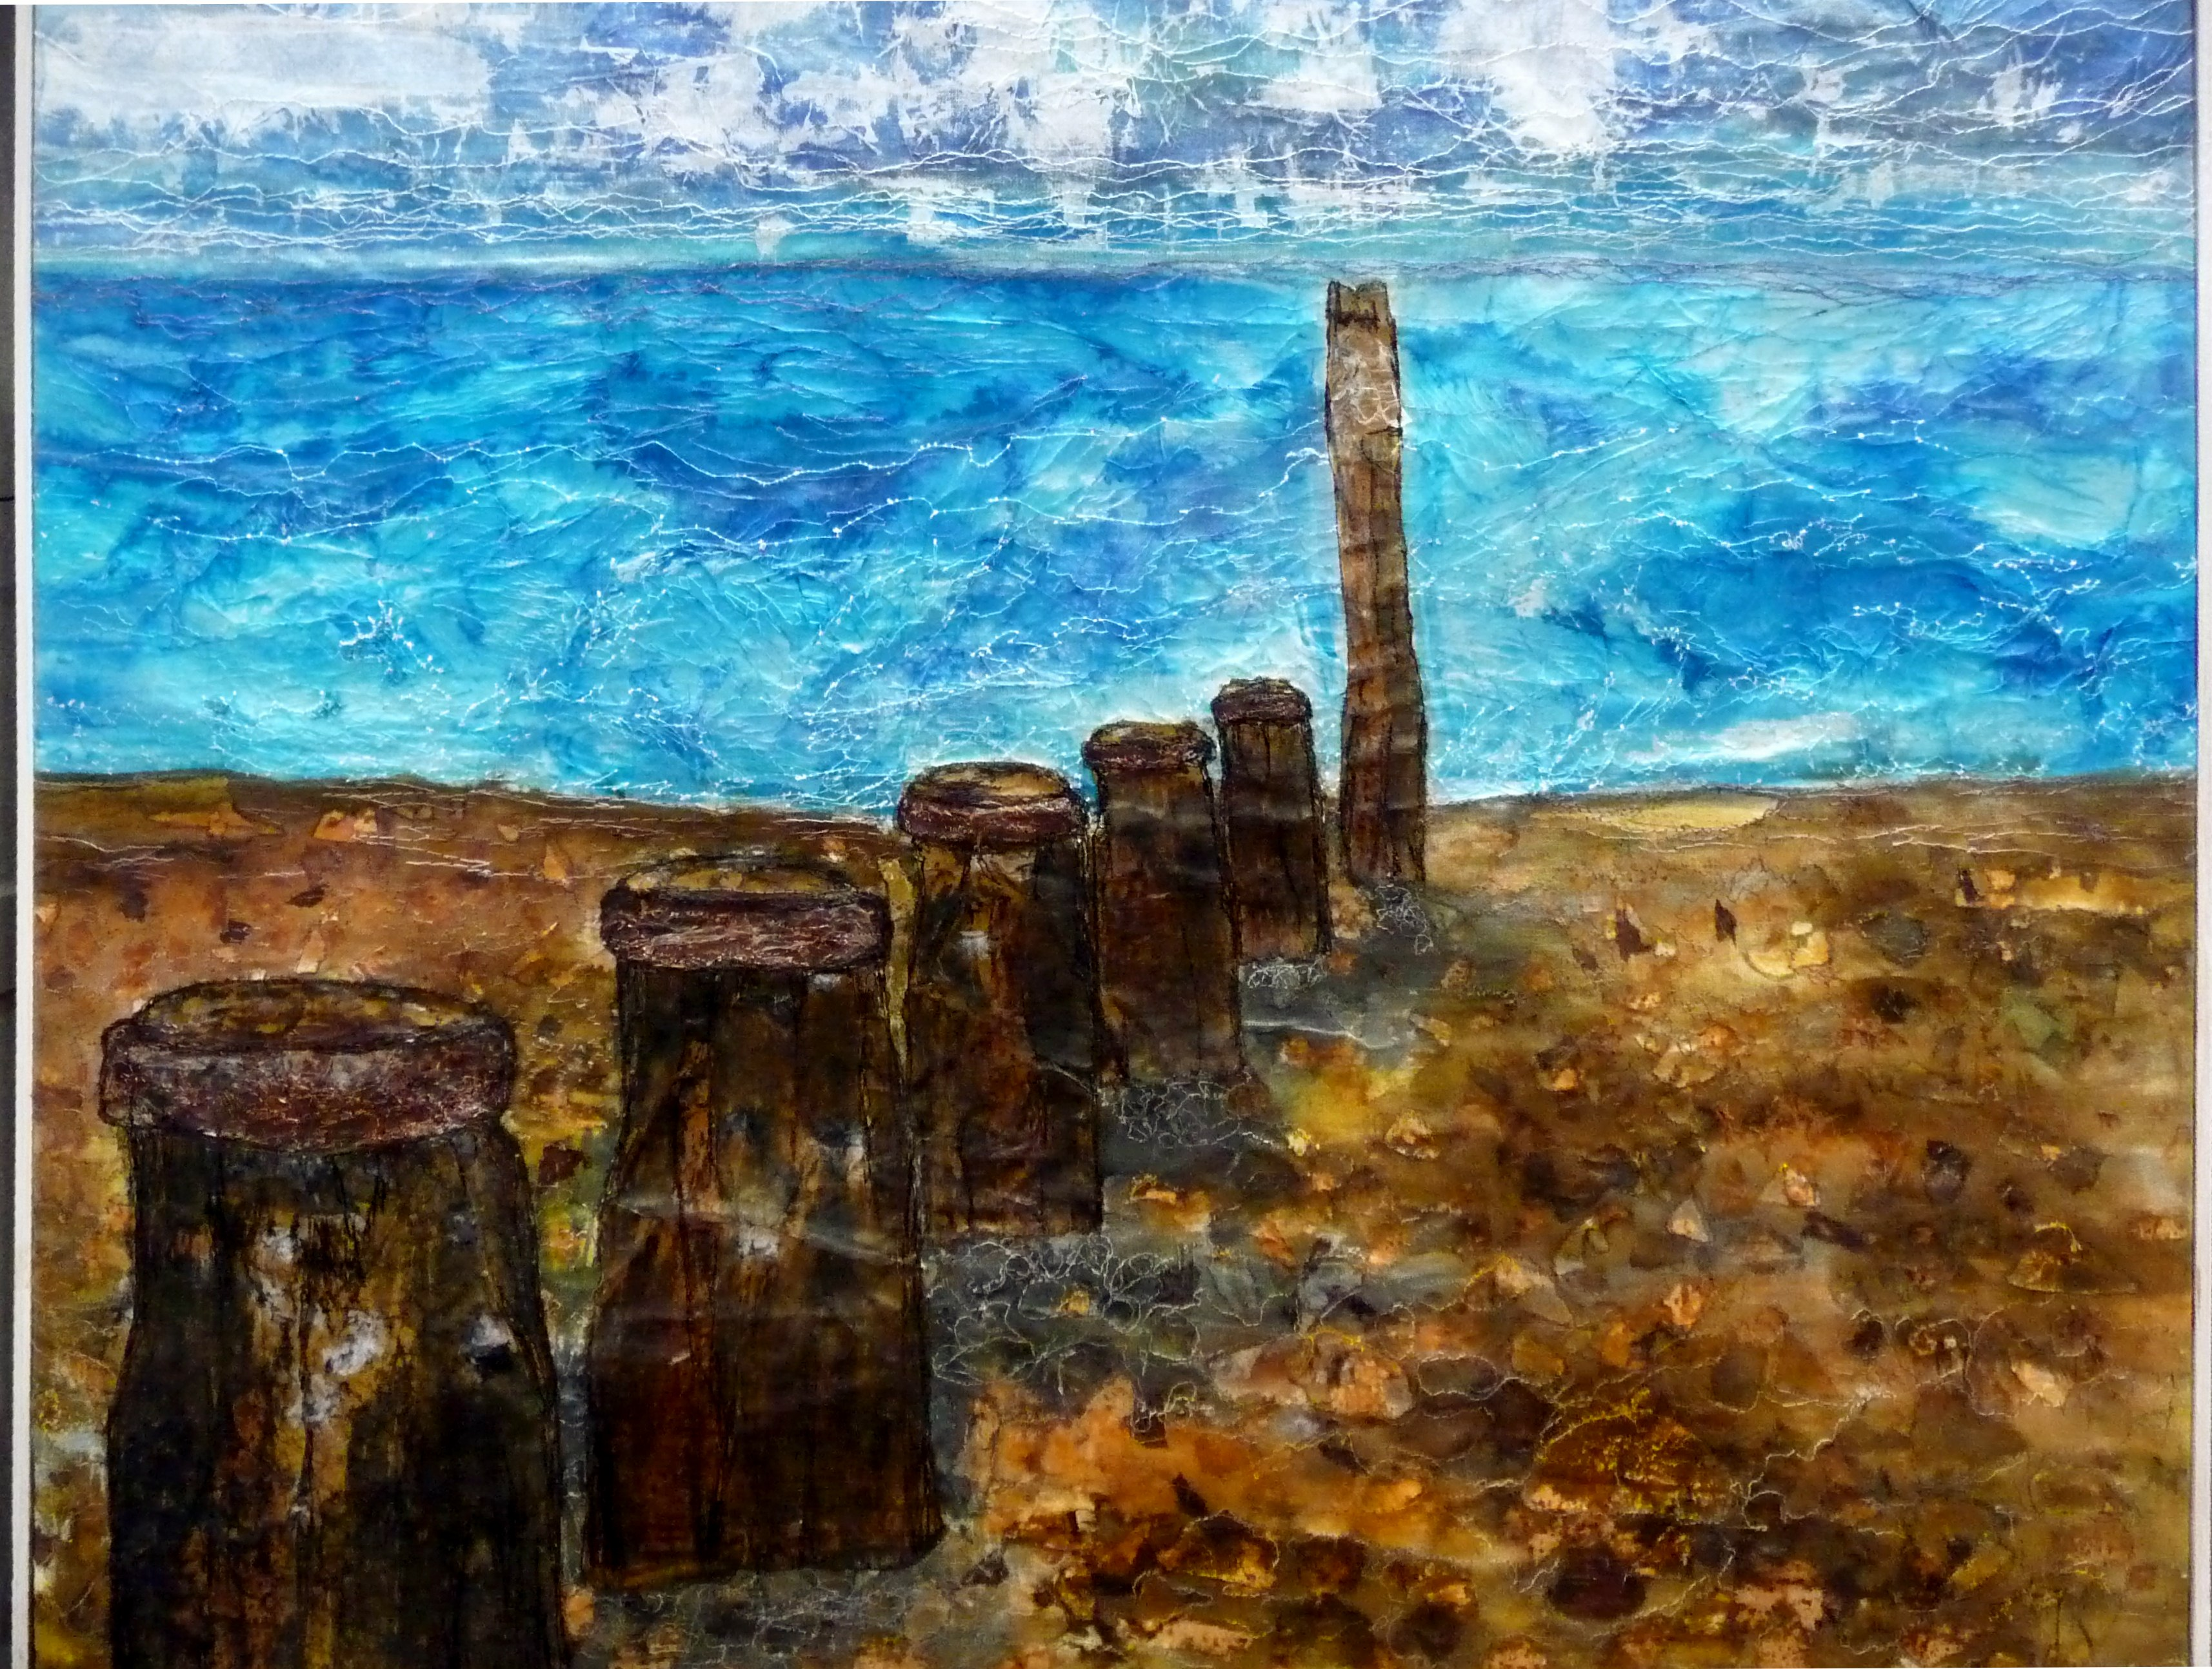 SOUTHWOLD BEACH by Alison Corfield, mixed media with fabric & paper, dye and machine stitch